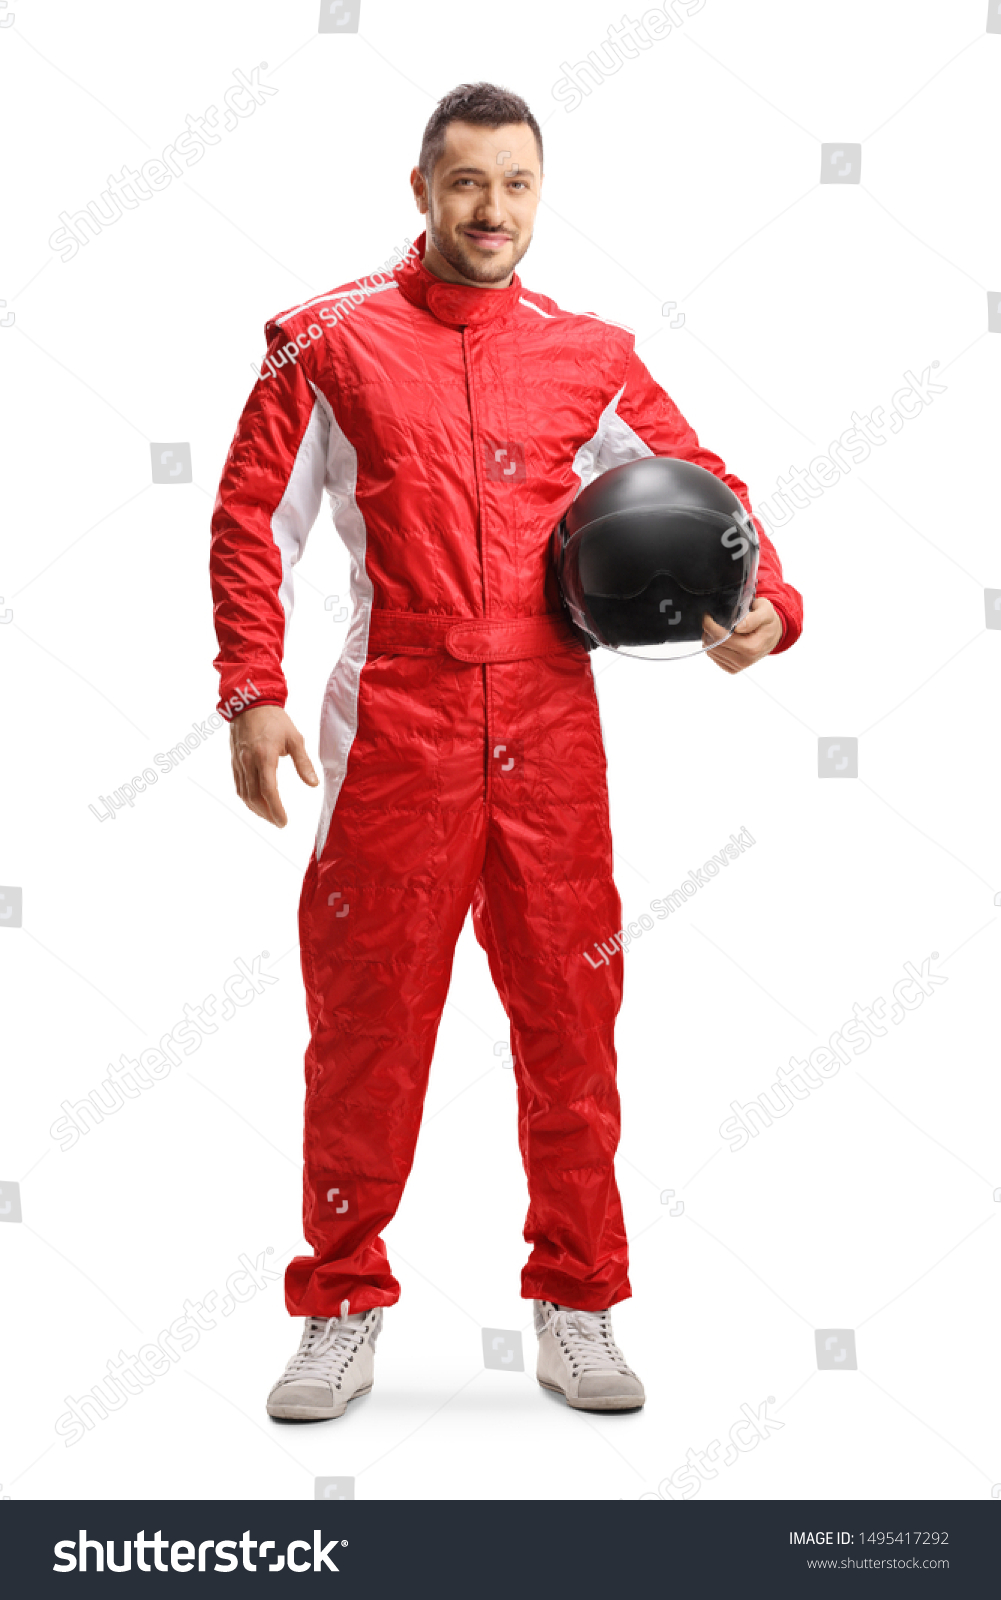 Full length portrait of a racer in a red uniform holding a helmet and smiling isolated on white background #1495417292